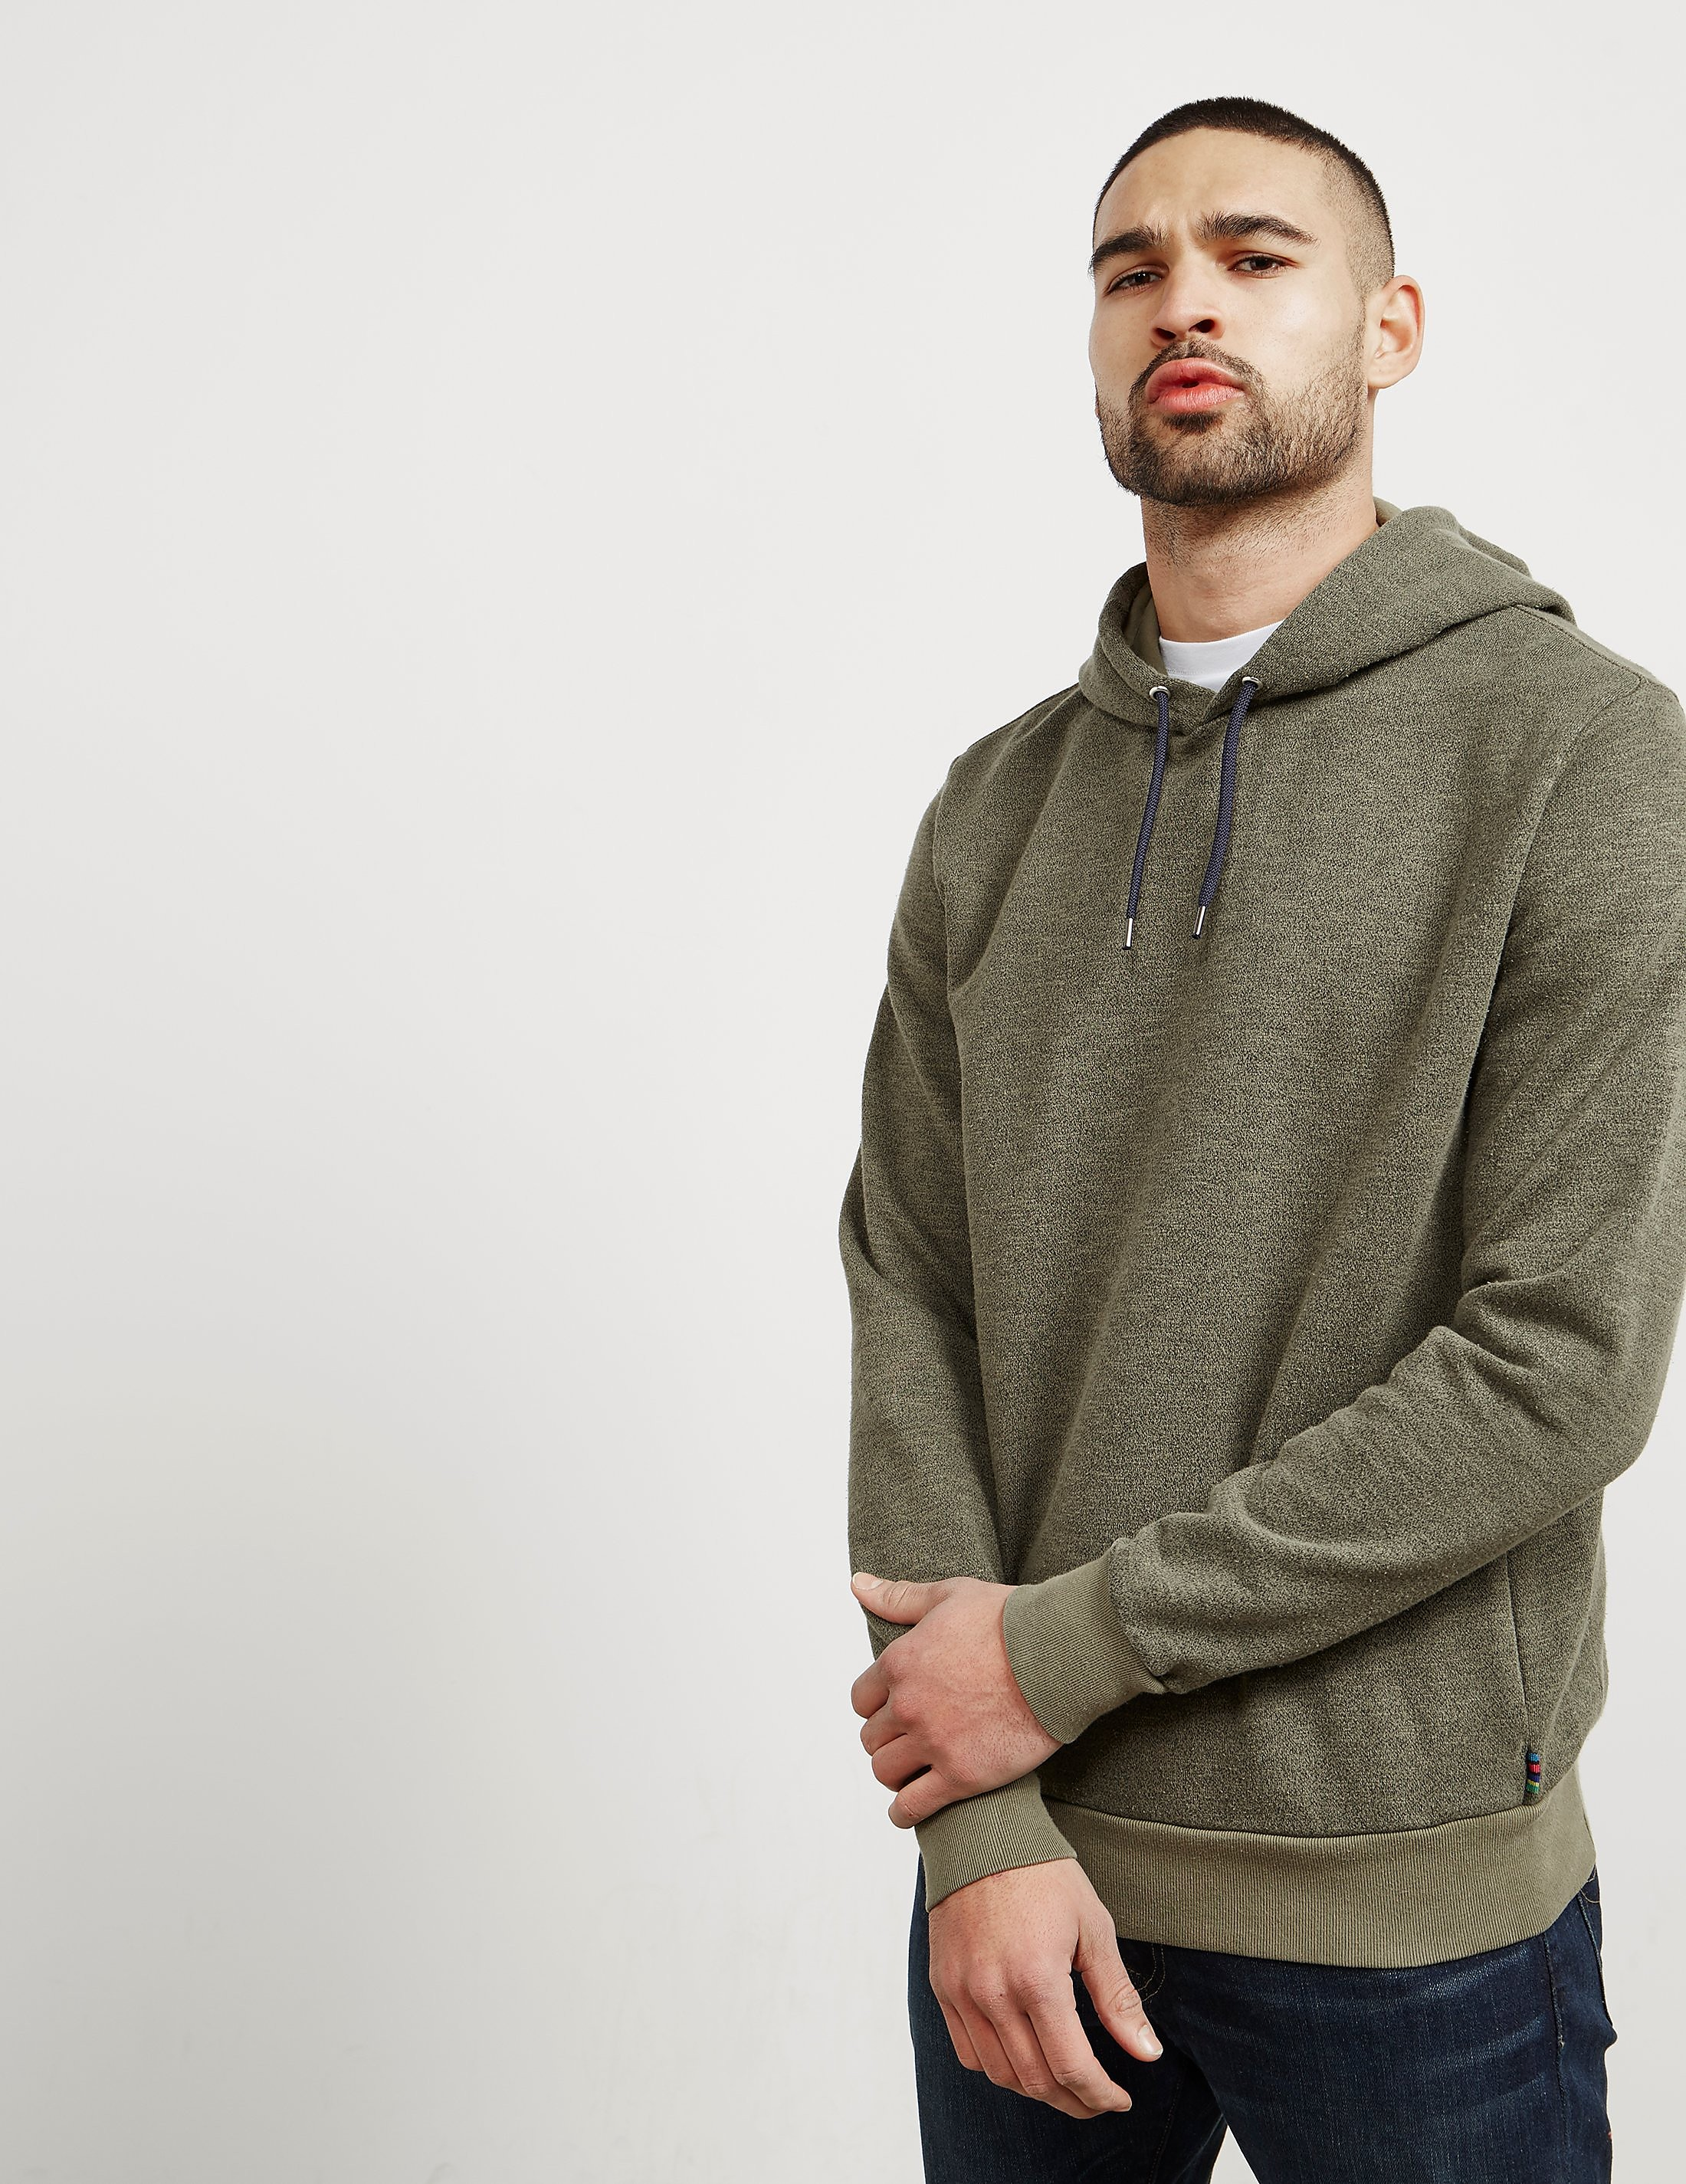 Paul Smith Garment Dyed Hoody